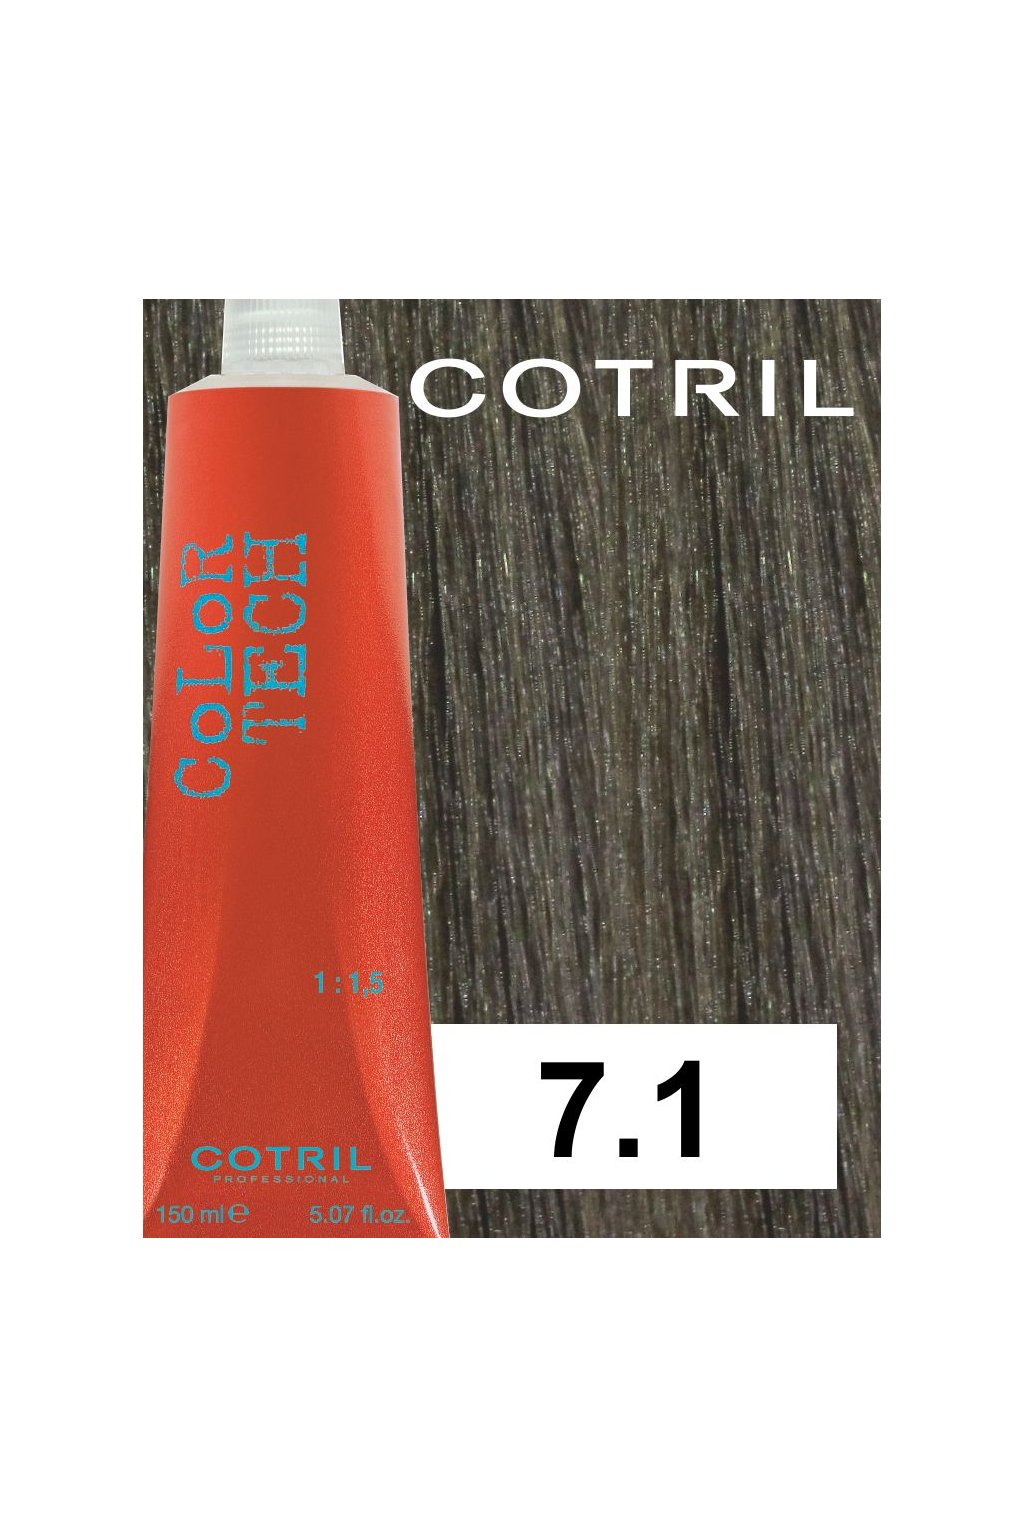 7 1 ct cotril